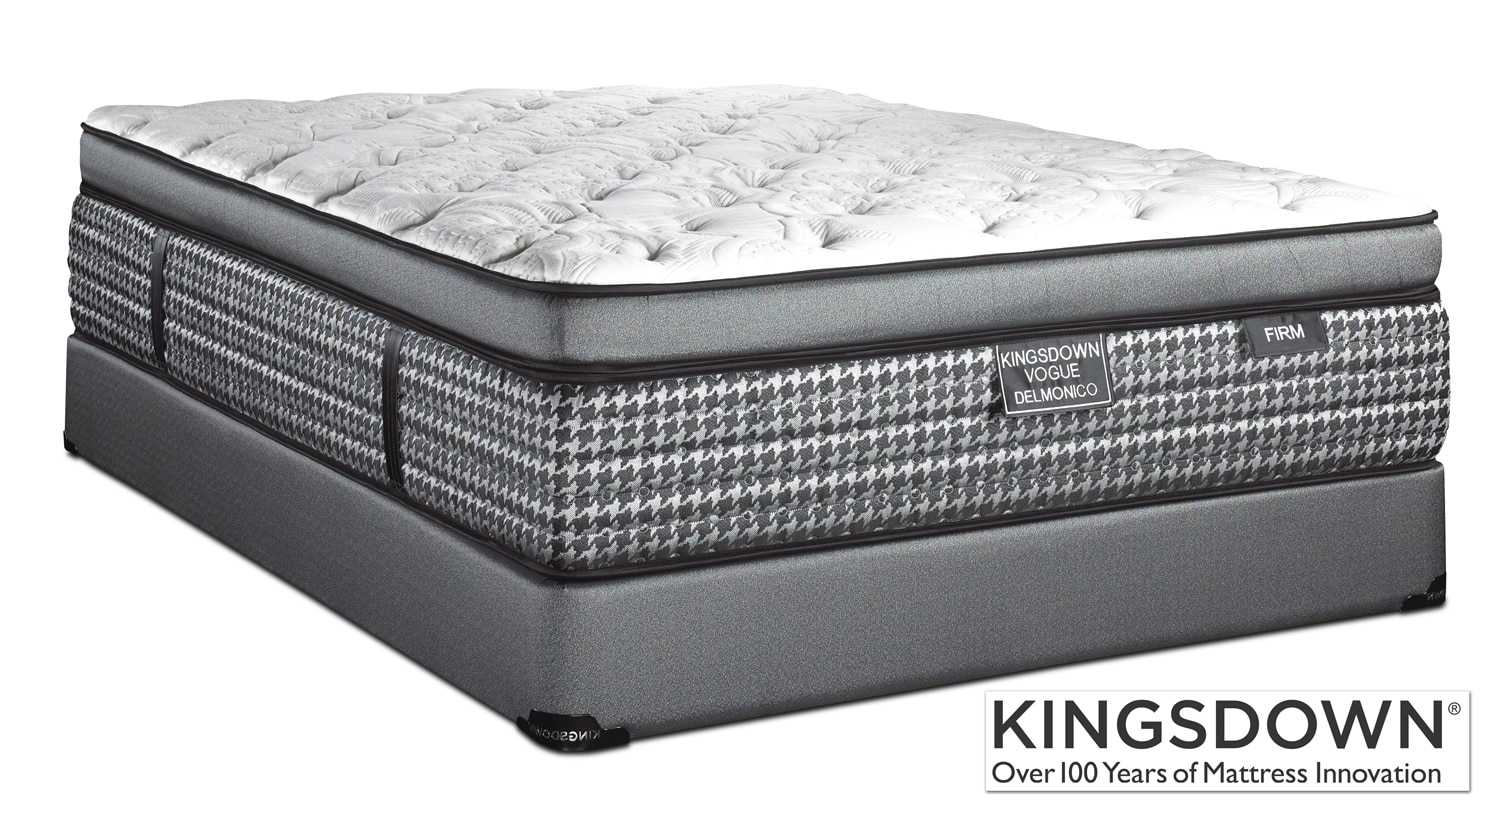 Kingsdown Delmonico Firm Full Mattress/Boxspring Set